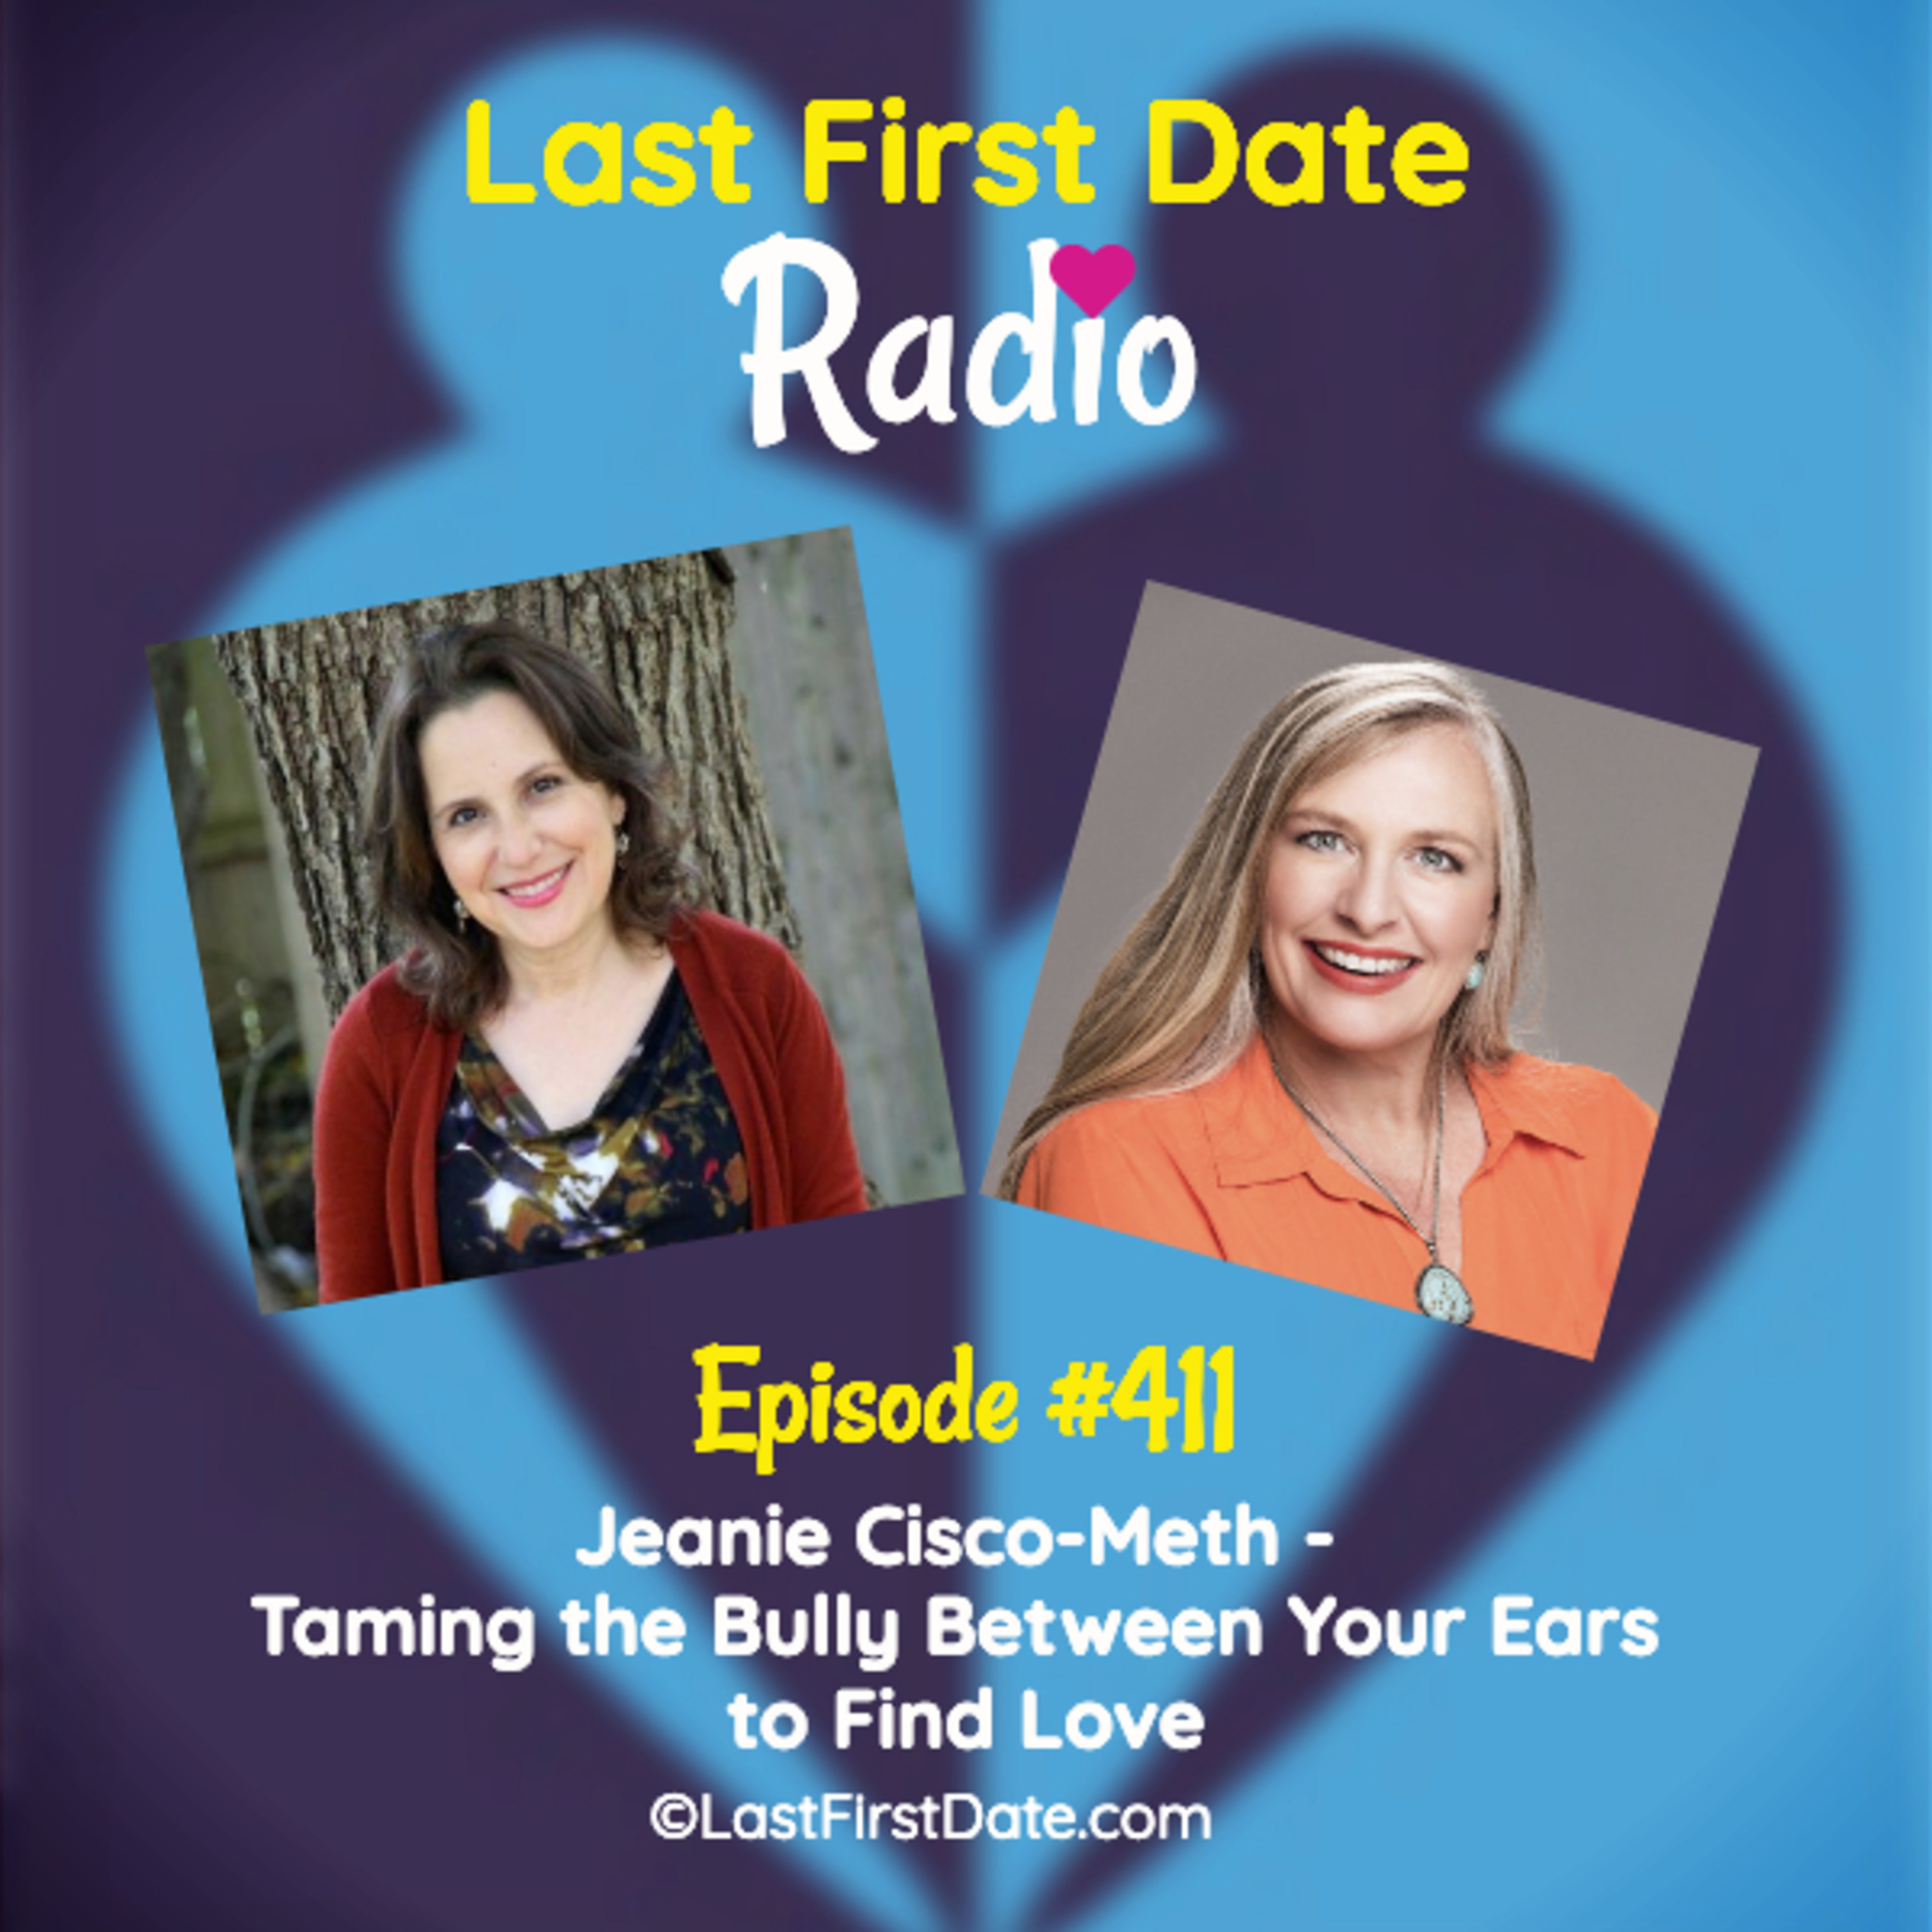 Last First Date Radio - EP 411: Jeanie Cisco-Meth - Taming the Bully Between Your Ears to Find  Love